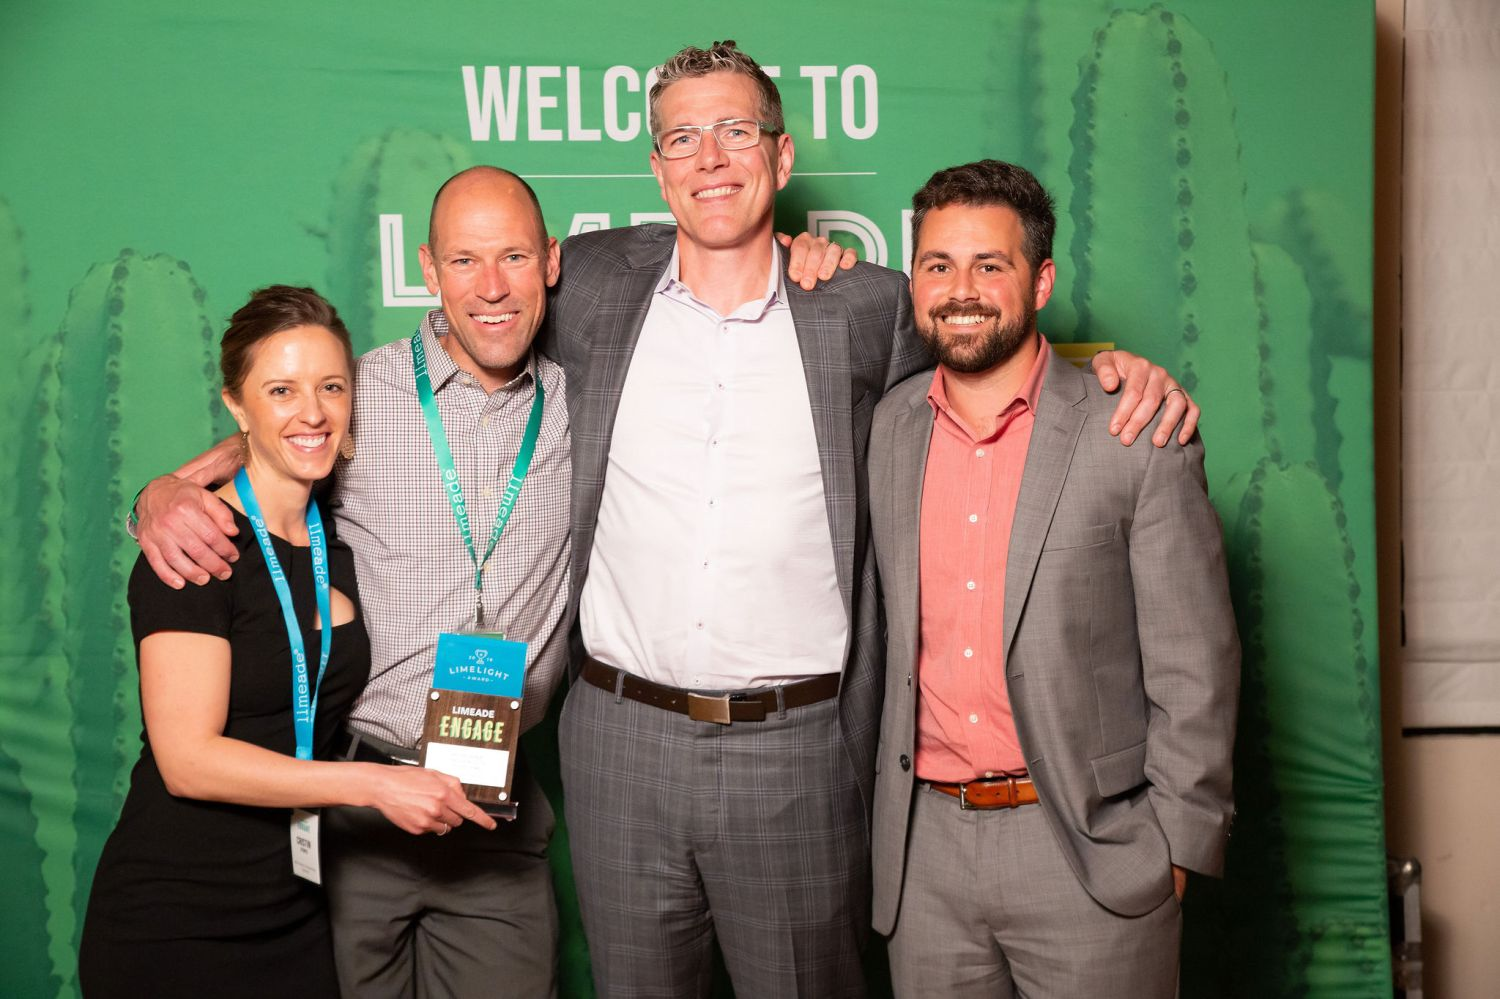 Cristin and Neal with Henry Albrecht, CEO of Limeade, and Joe Decker, our Limeade Account Manager.